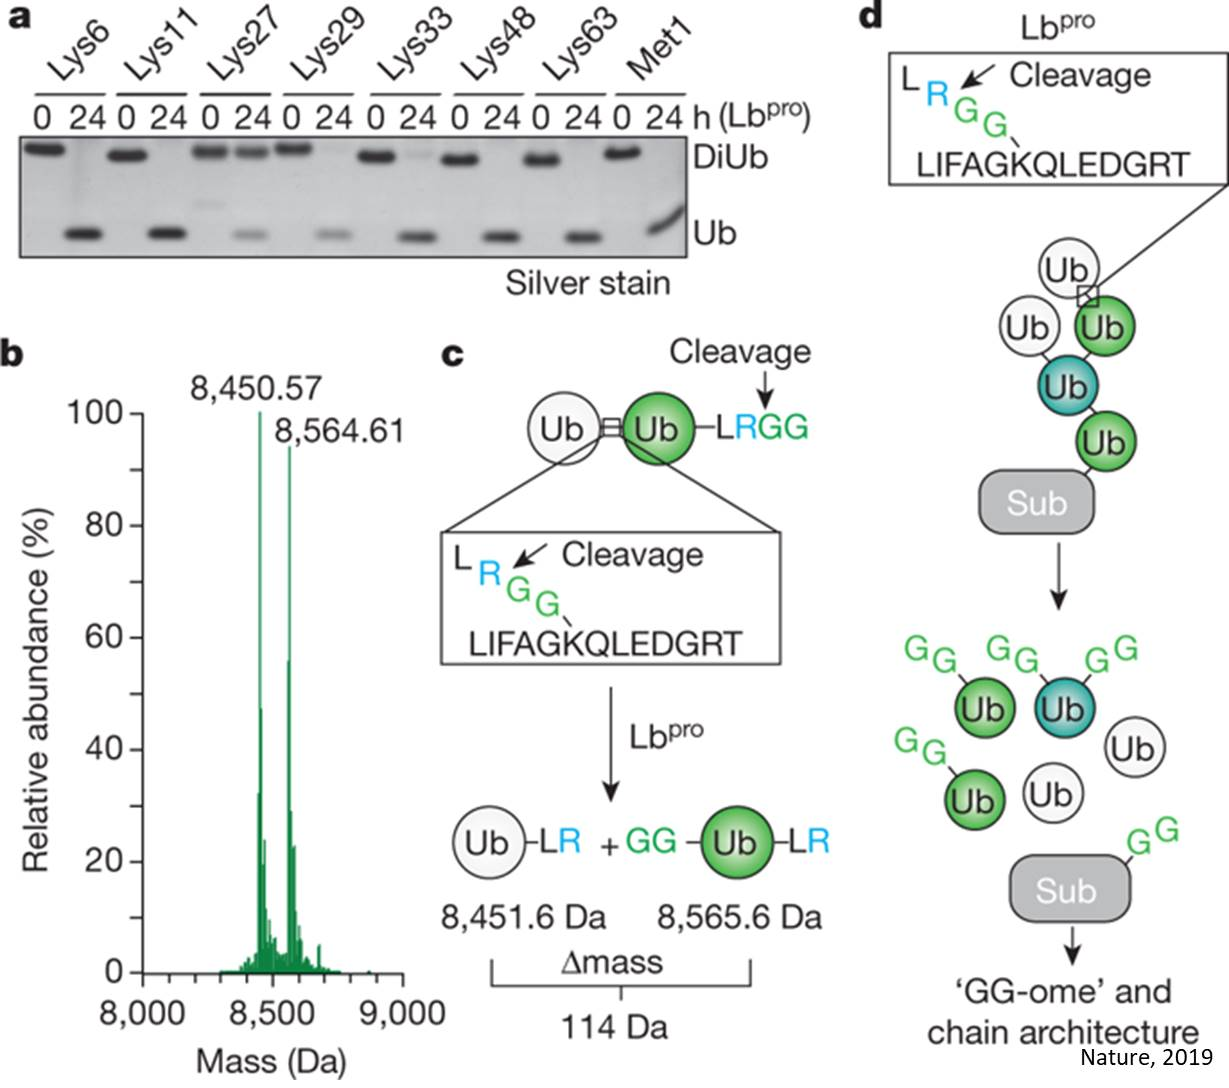 Ubiquitin-clipping technique to provide insights into ubiquitin signaling